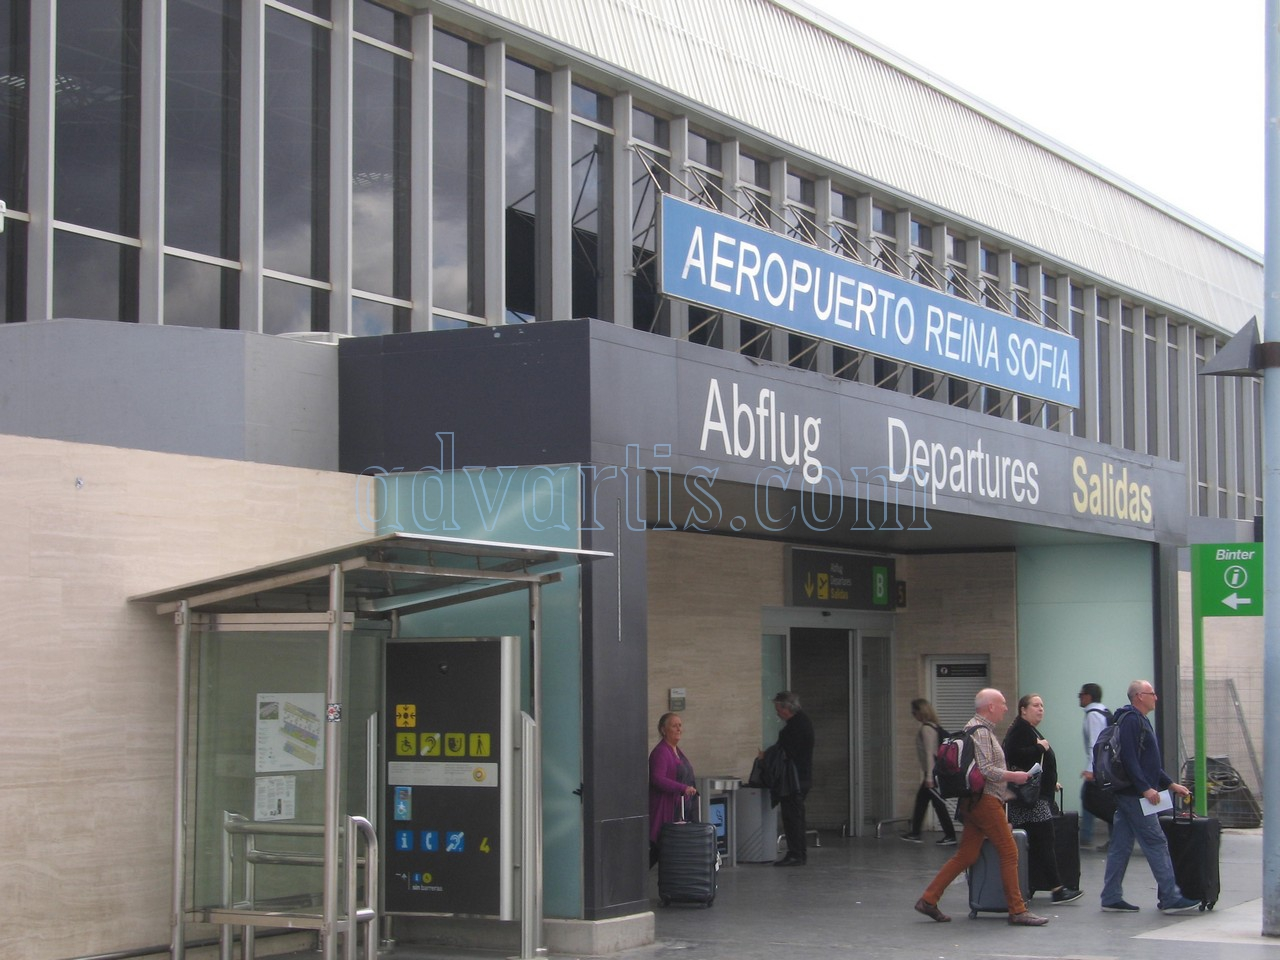 Tenerife south airport Departures